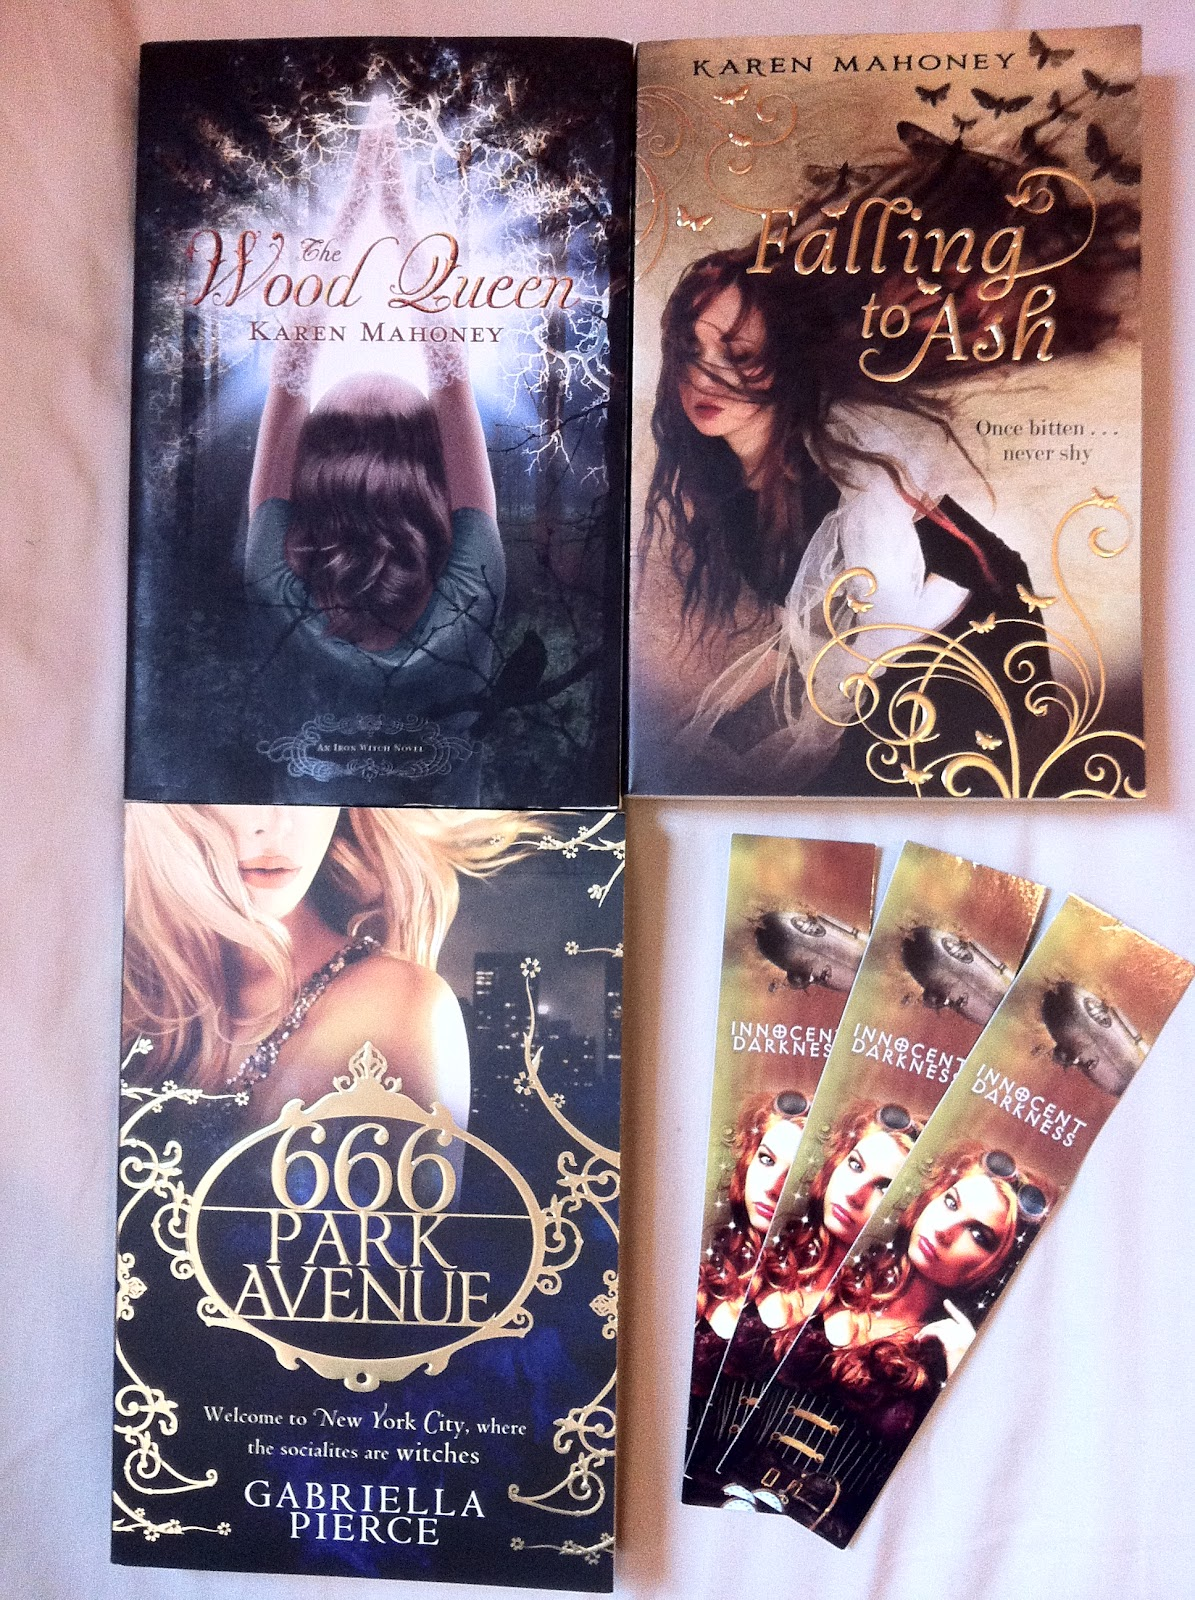 So That Was The Awesome Week That Was Our Book Haul! We're Off To See What  You Got Now :)